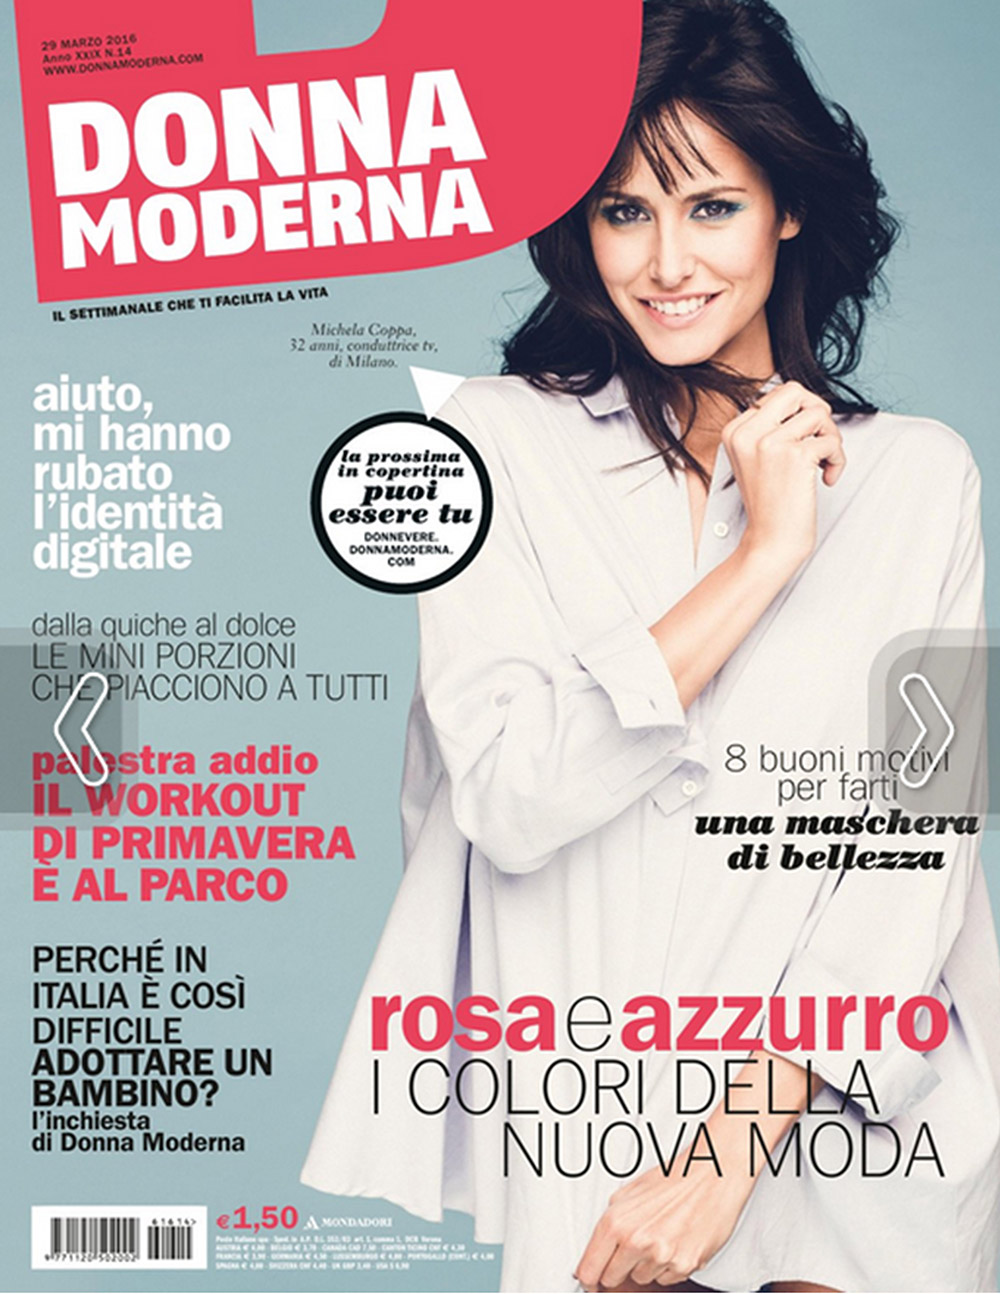 Donna Moderna 23 March 2016